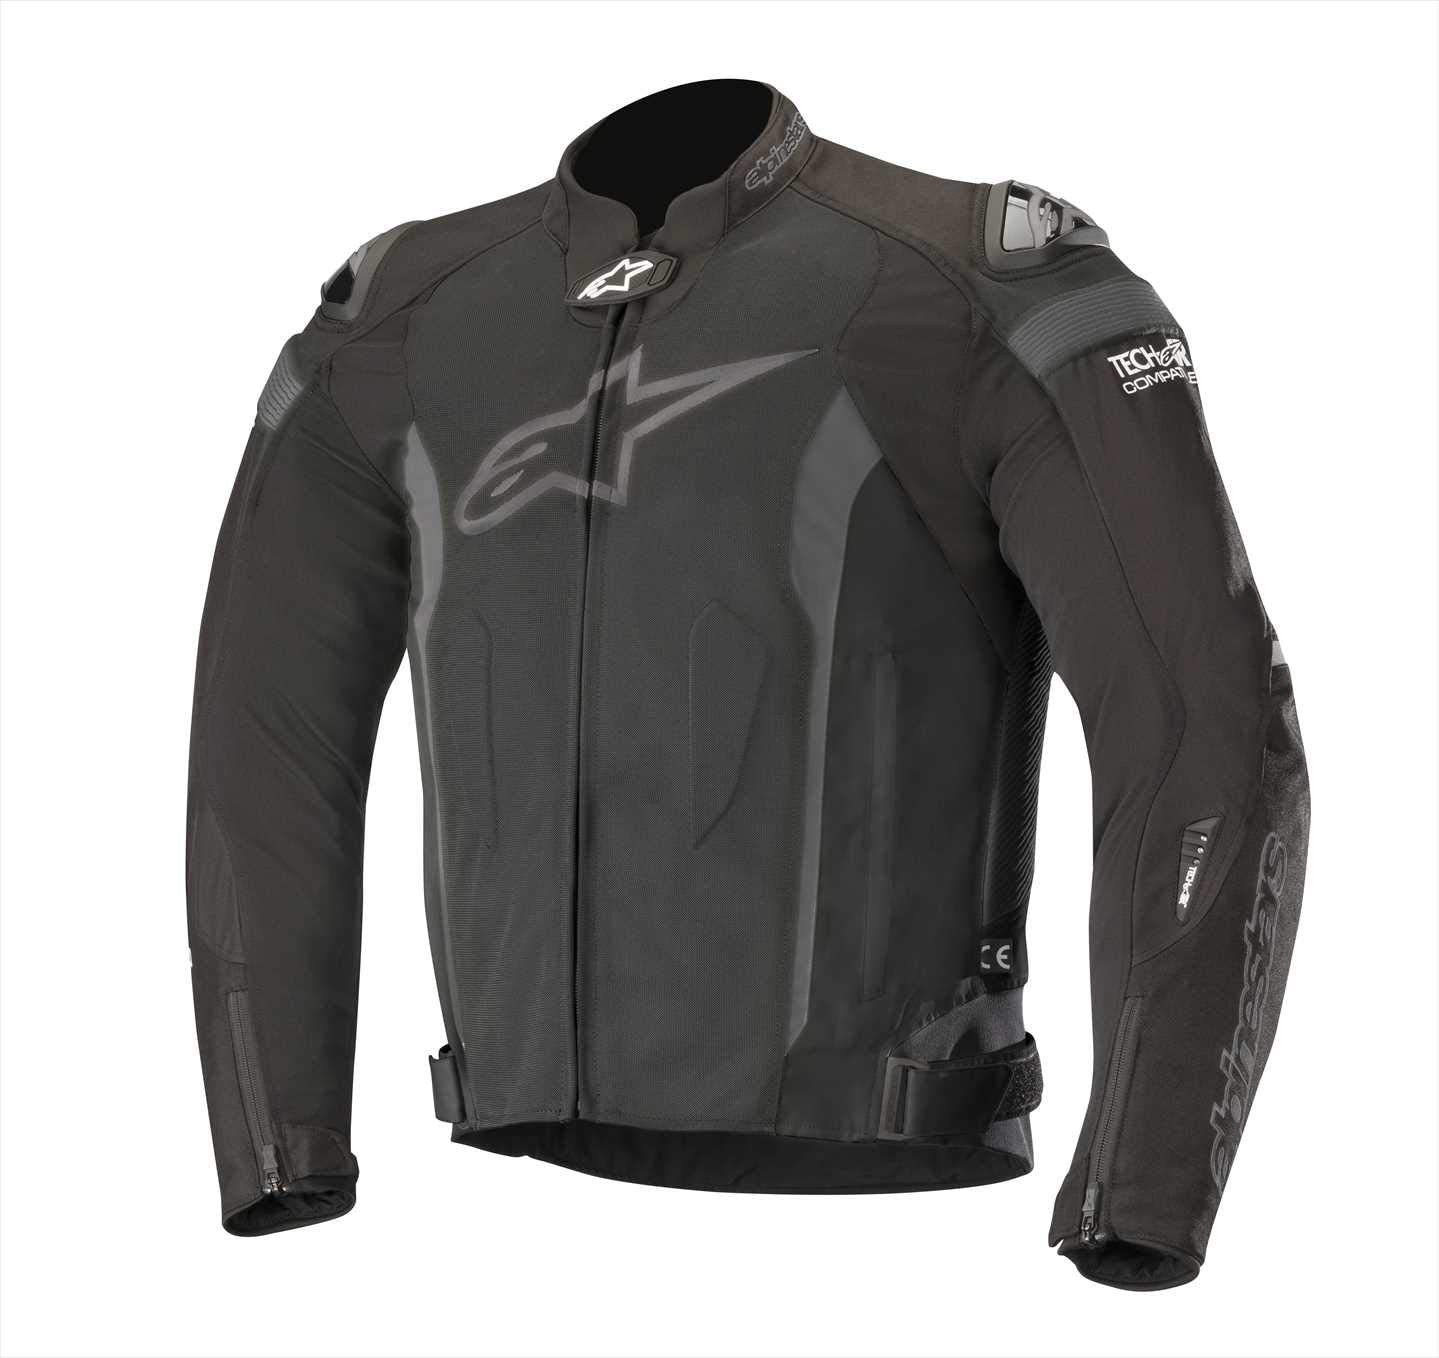 Alpinestars Men's T-Missile Air Jacket Ranking TOP2 Motorcycle Tech-Air Compa Beauty products